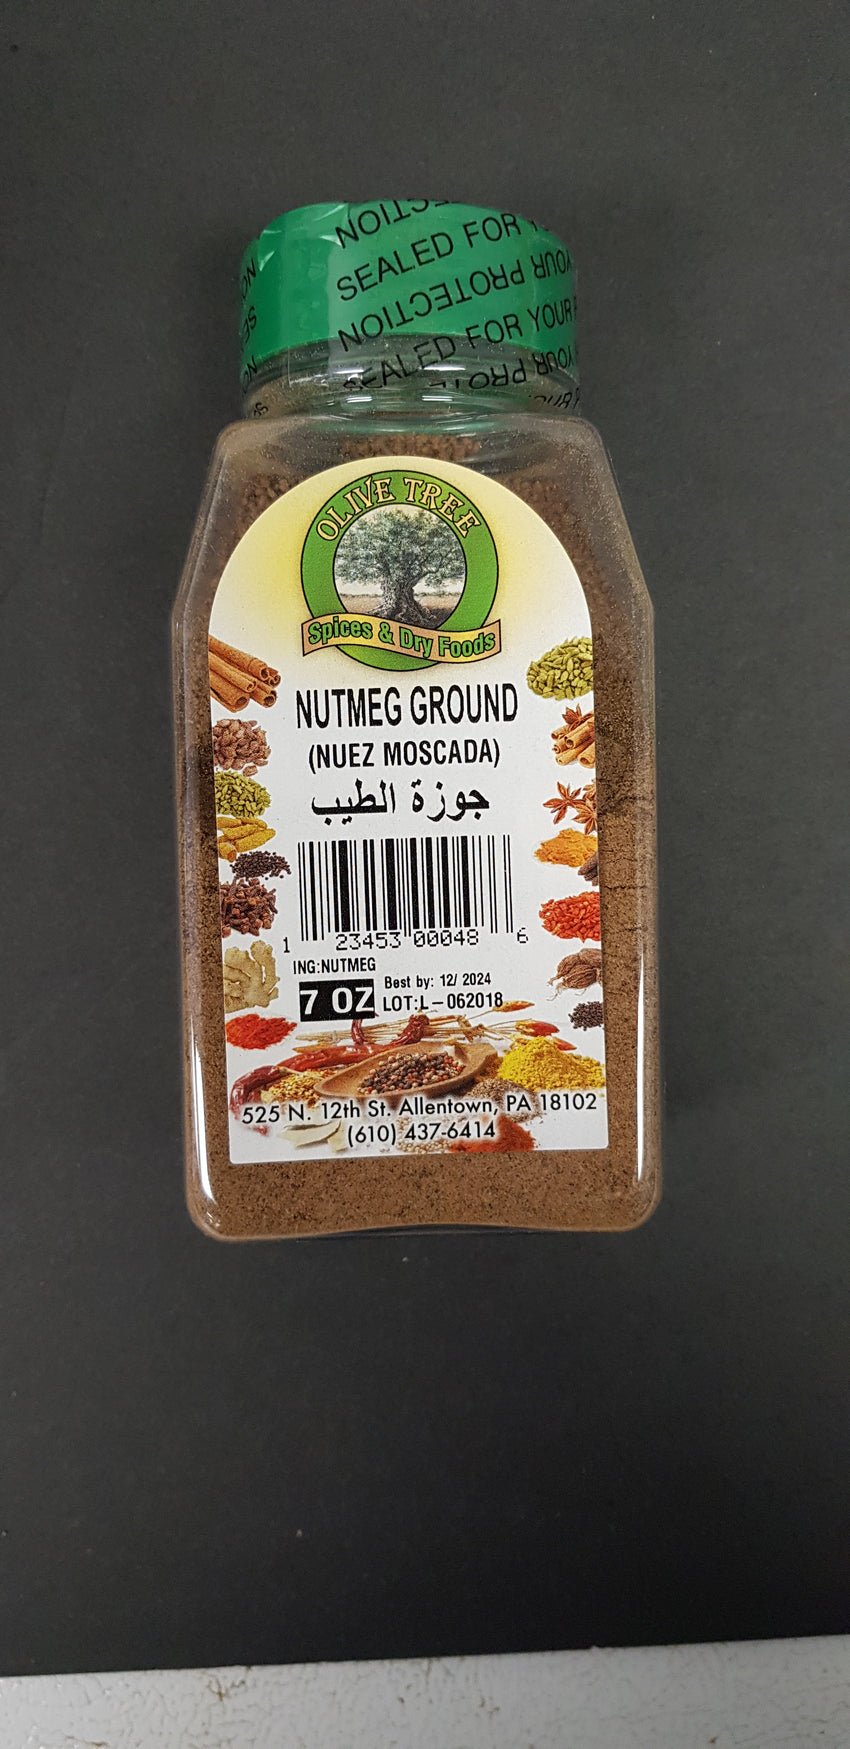 Olive tree nutmeg ground